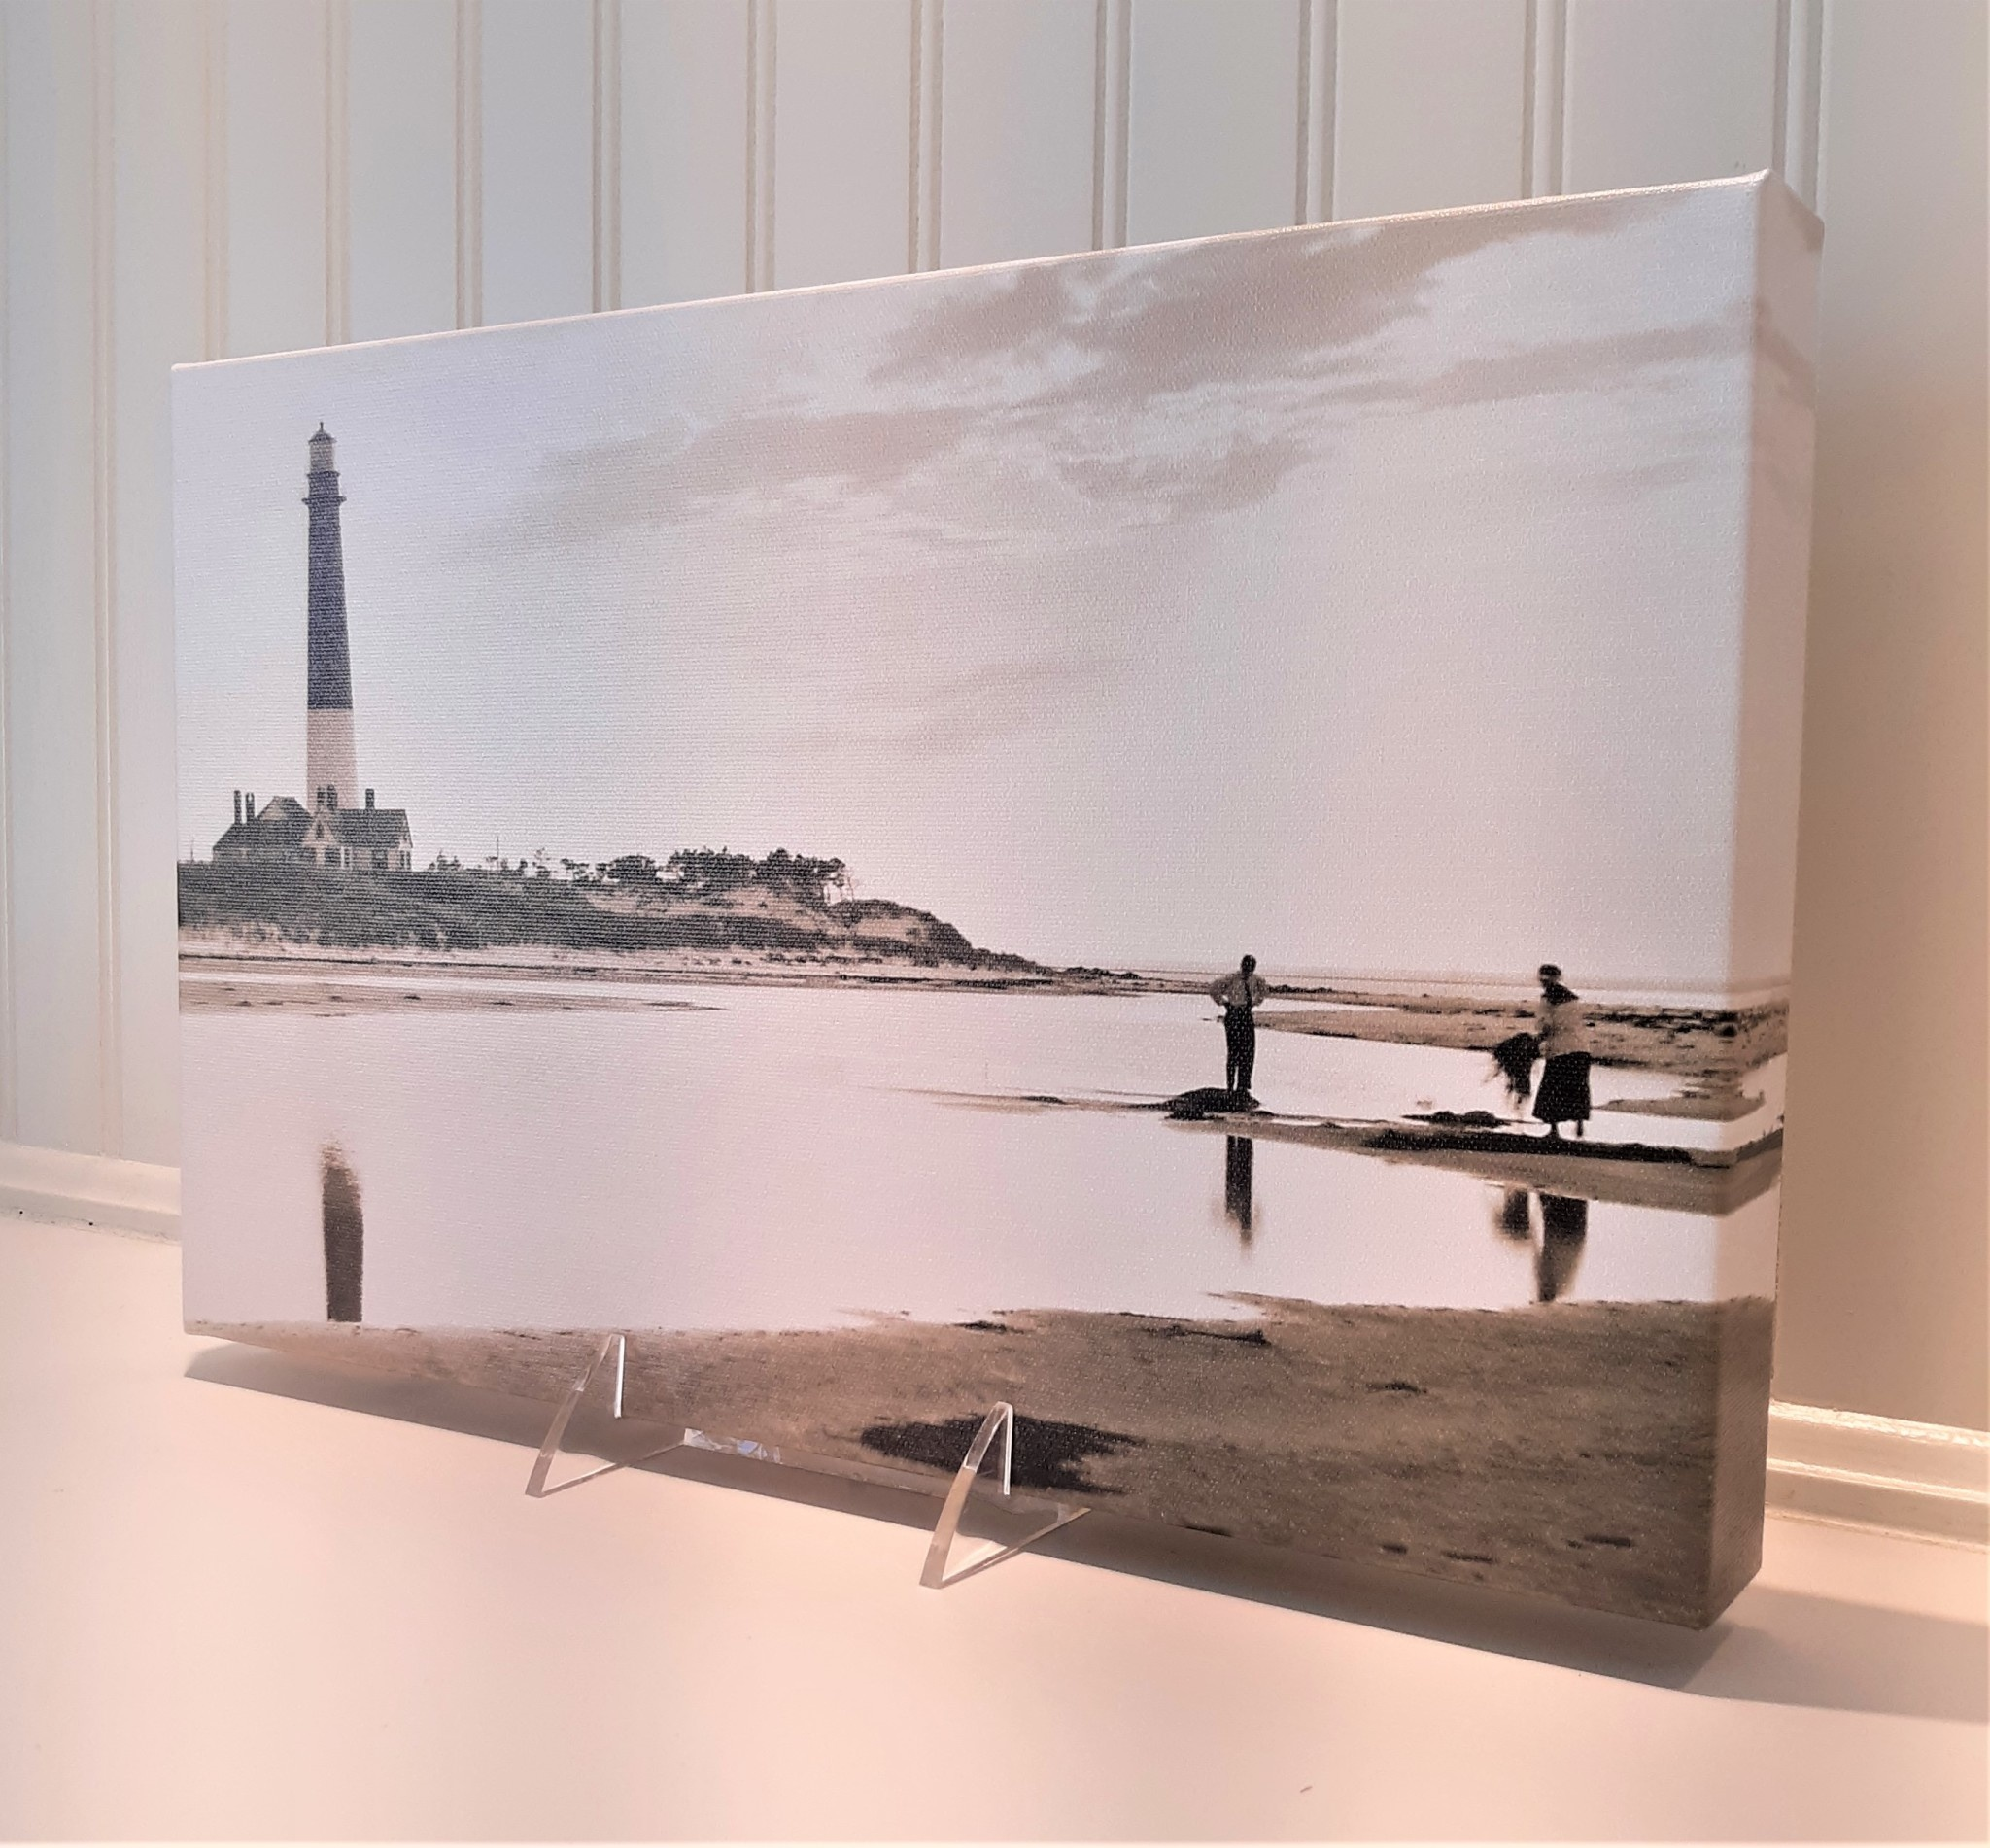 Canvas 9x14 Reflection of Barnegat Lighthouse with People in Ocean